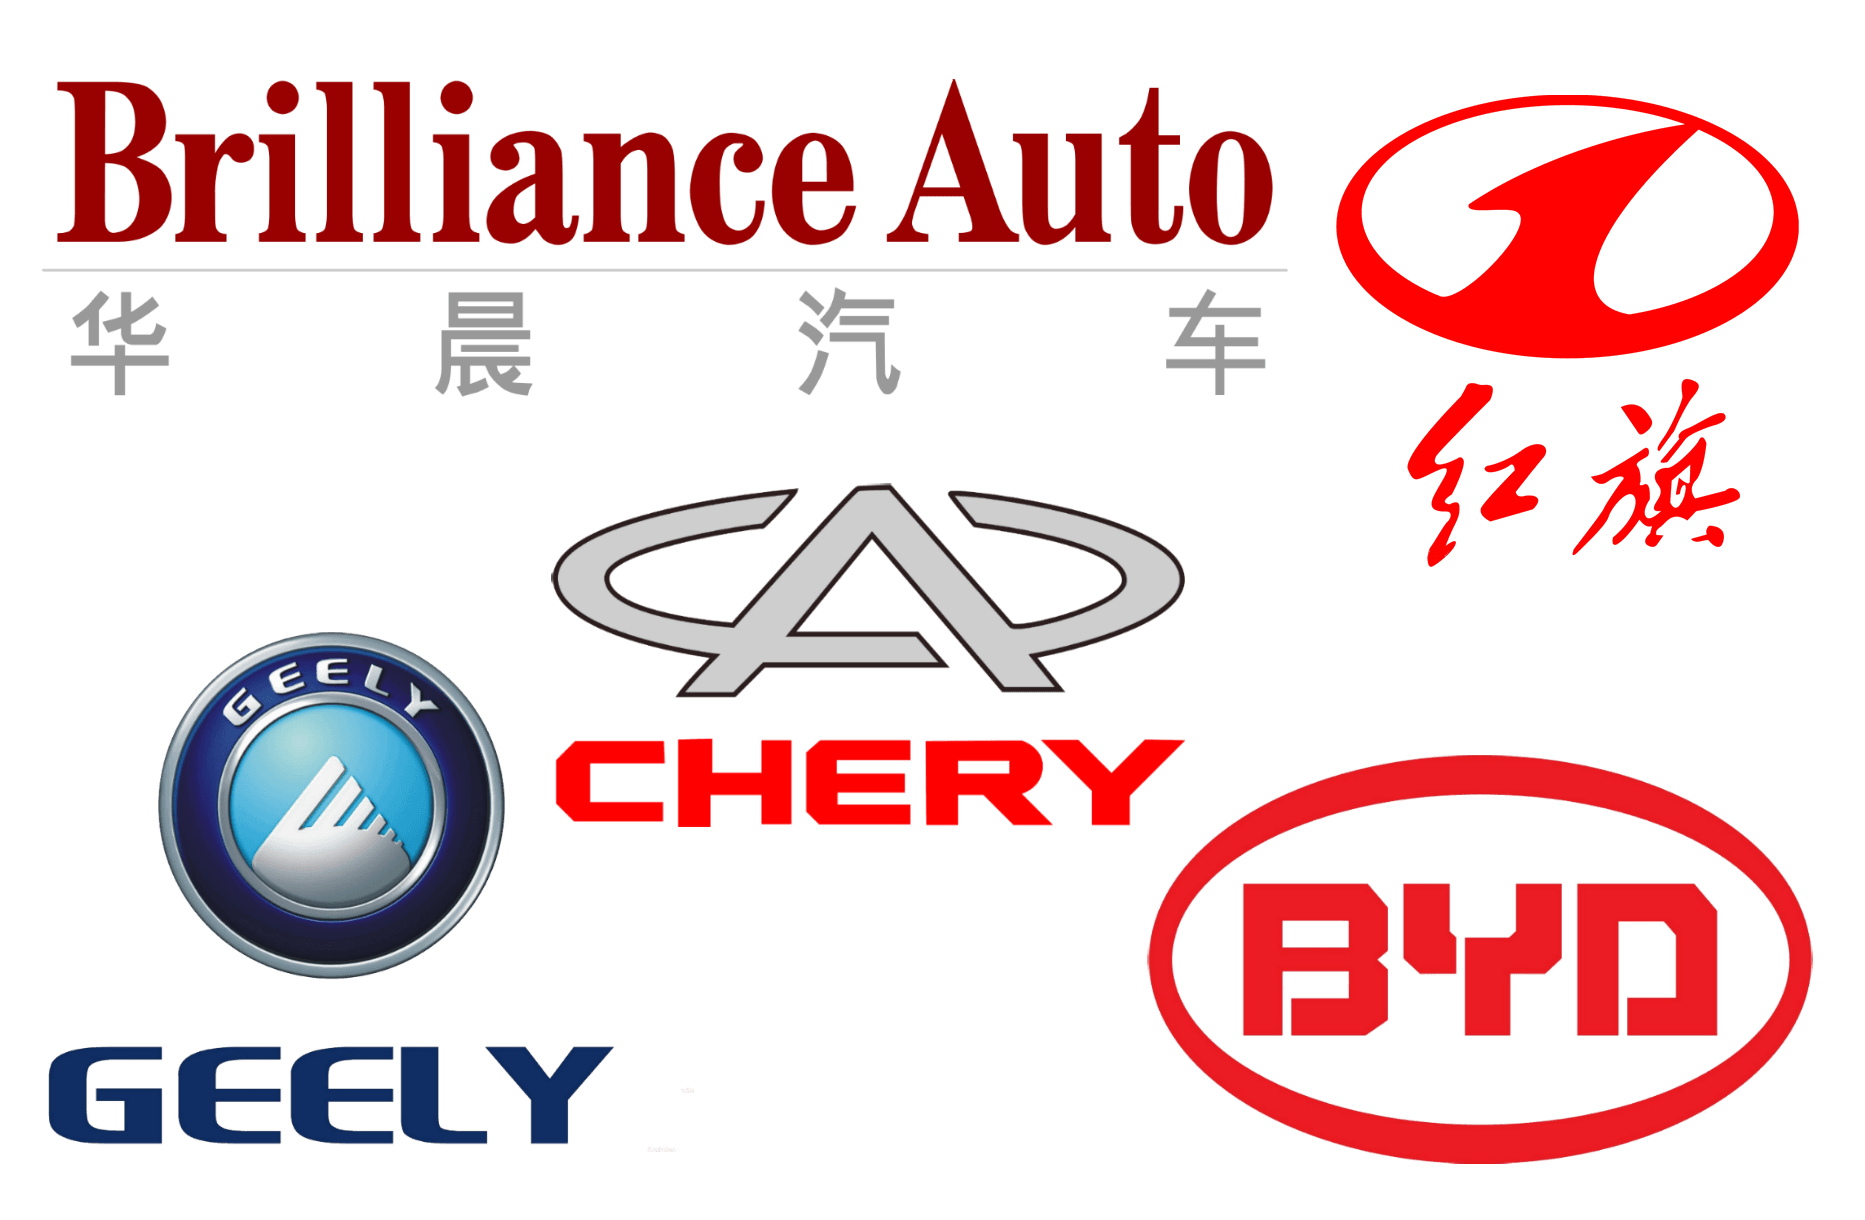 Chinese Car Brands Logo - Chinese Car Brands, Companies and Manufacturers | Car Brand Names.com